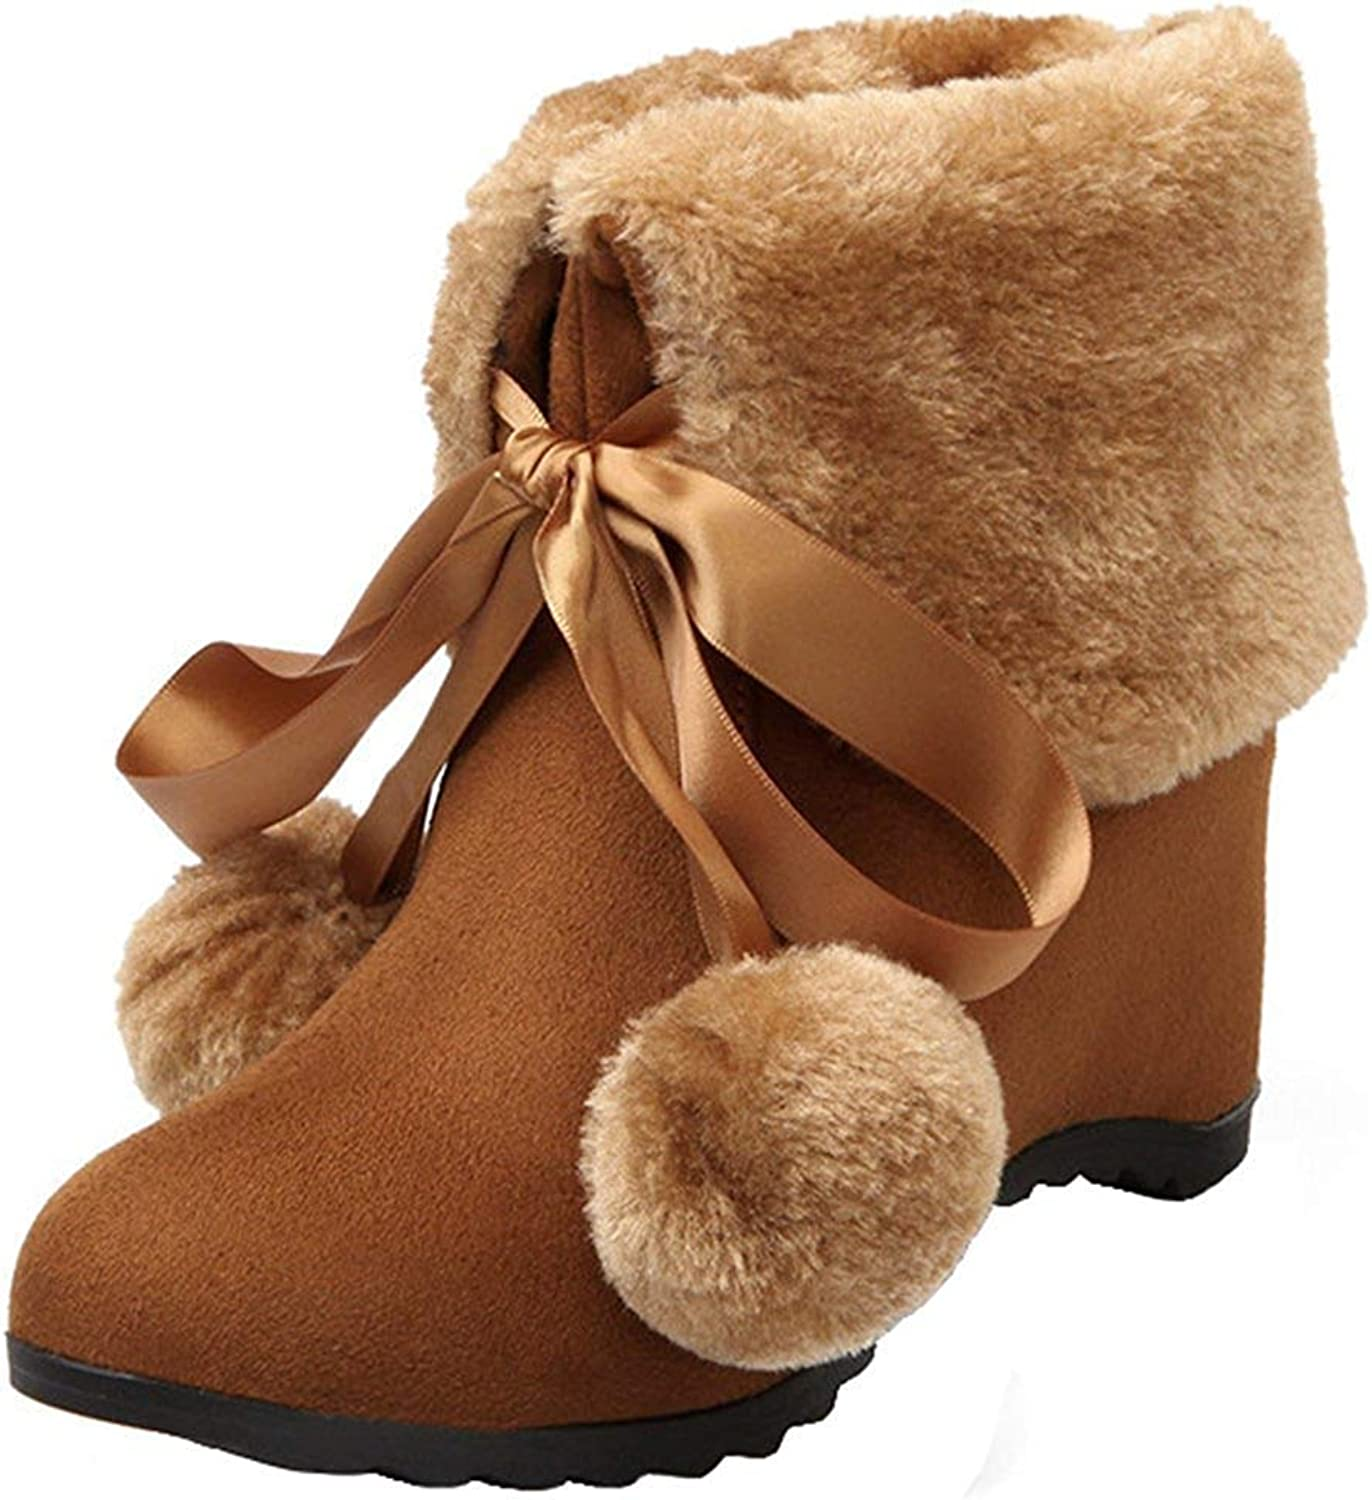 Ghssheh Women's Cute Pompons Bow Folded Top Invisible Medium Heel Short Snow Boots Round Toe Lace Up Fleeced Ankle Booties Brown 4 M US